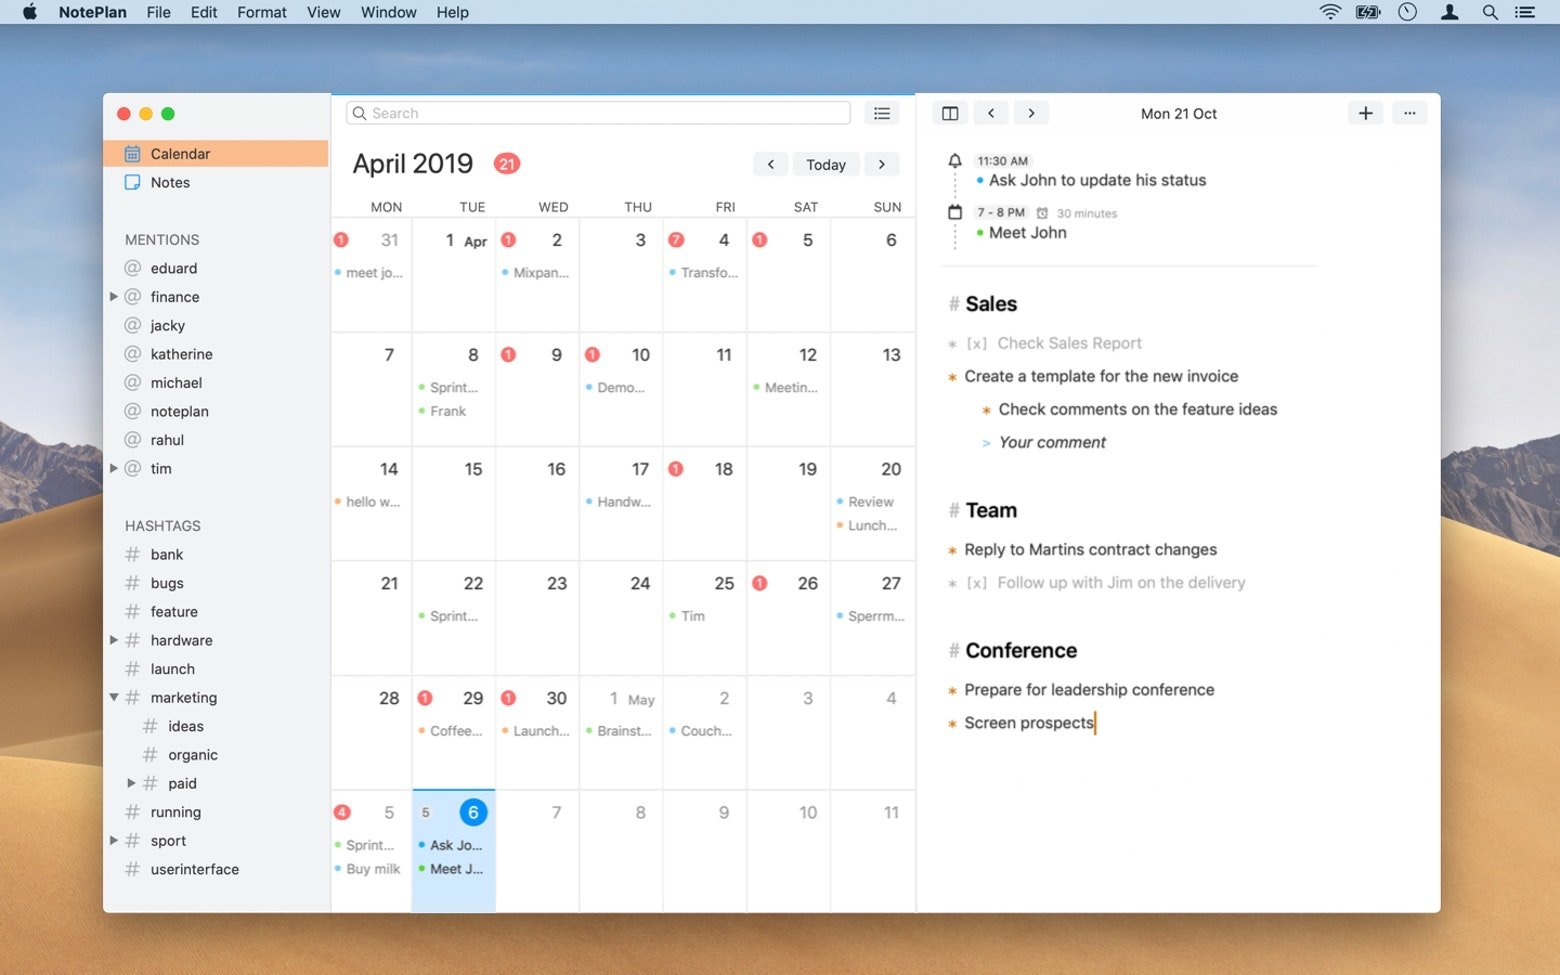 noteplan for time management